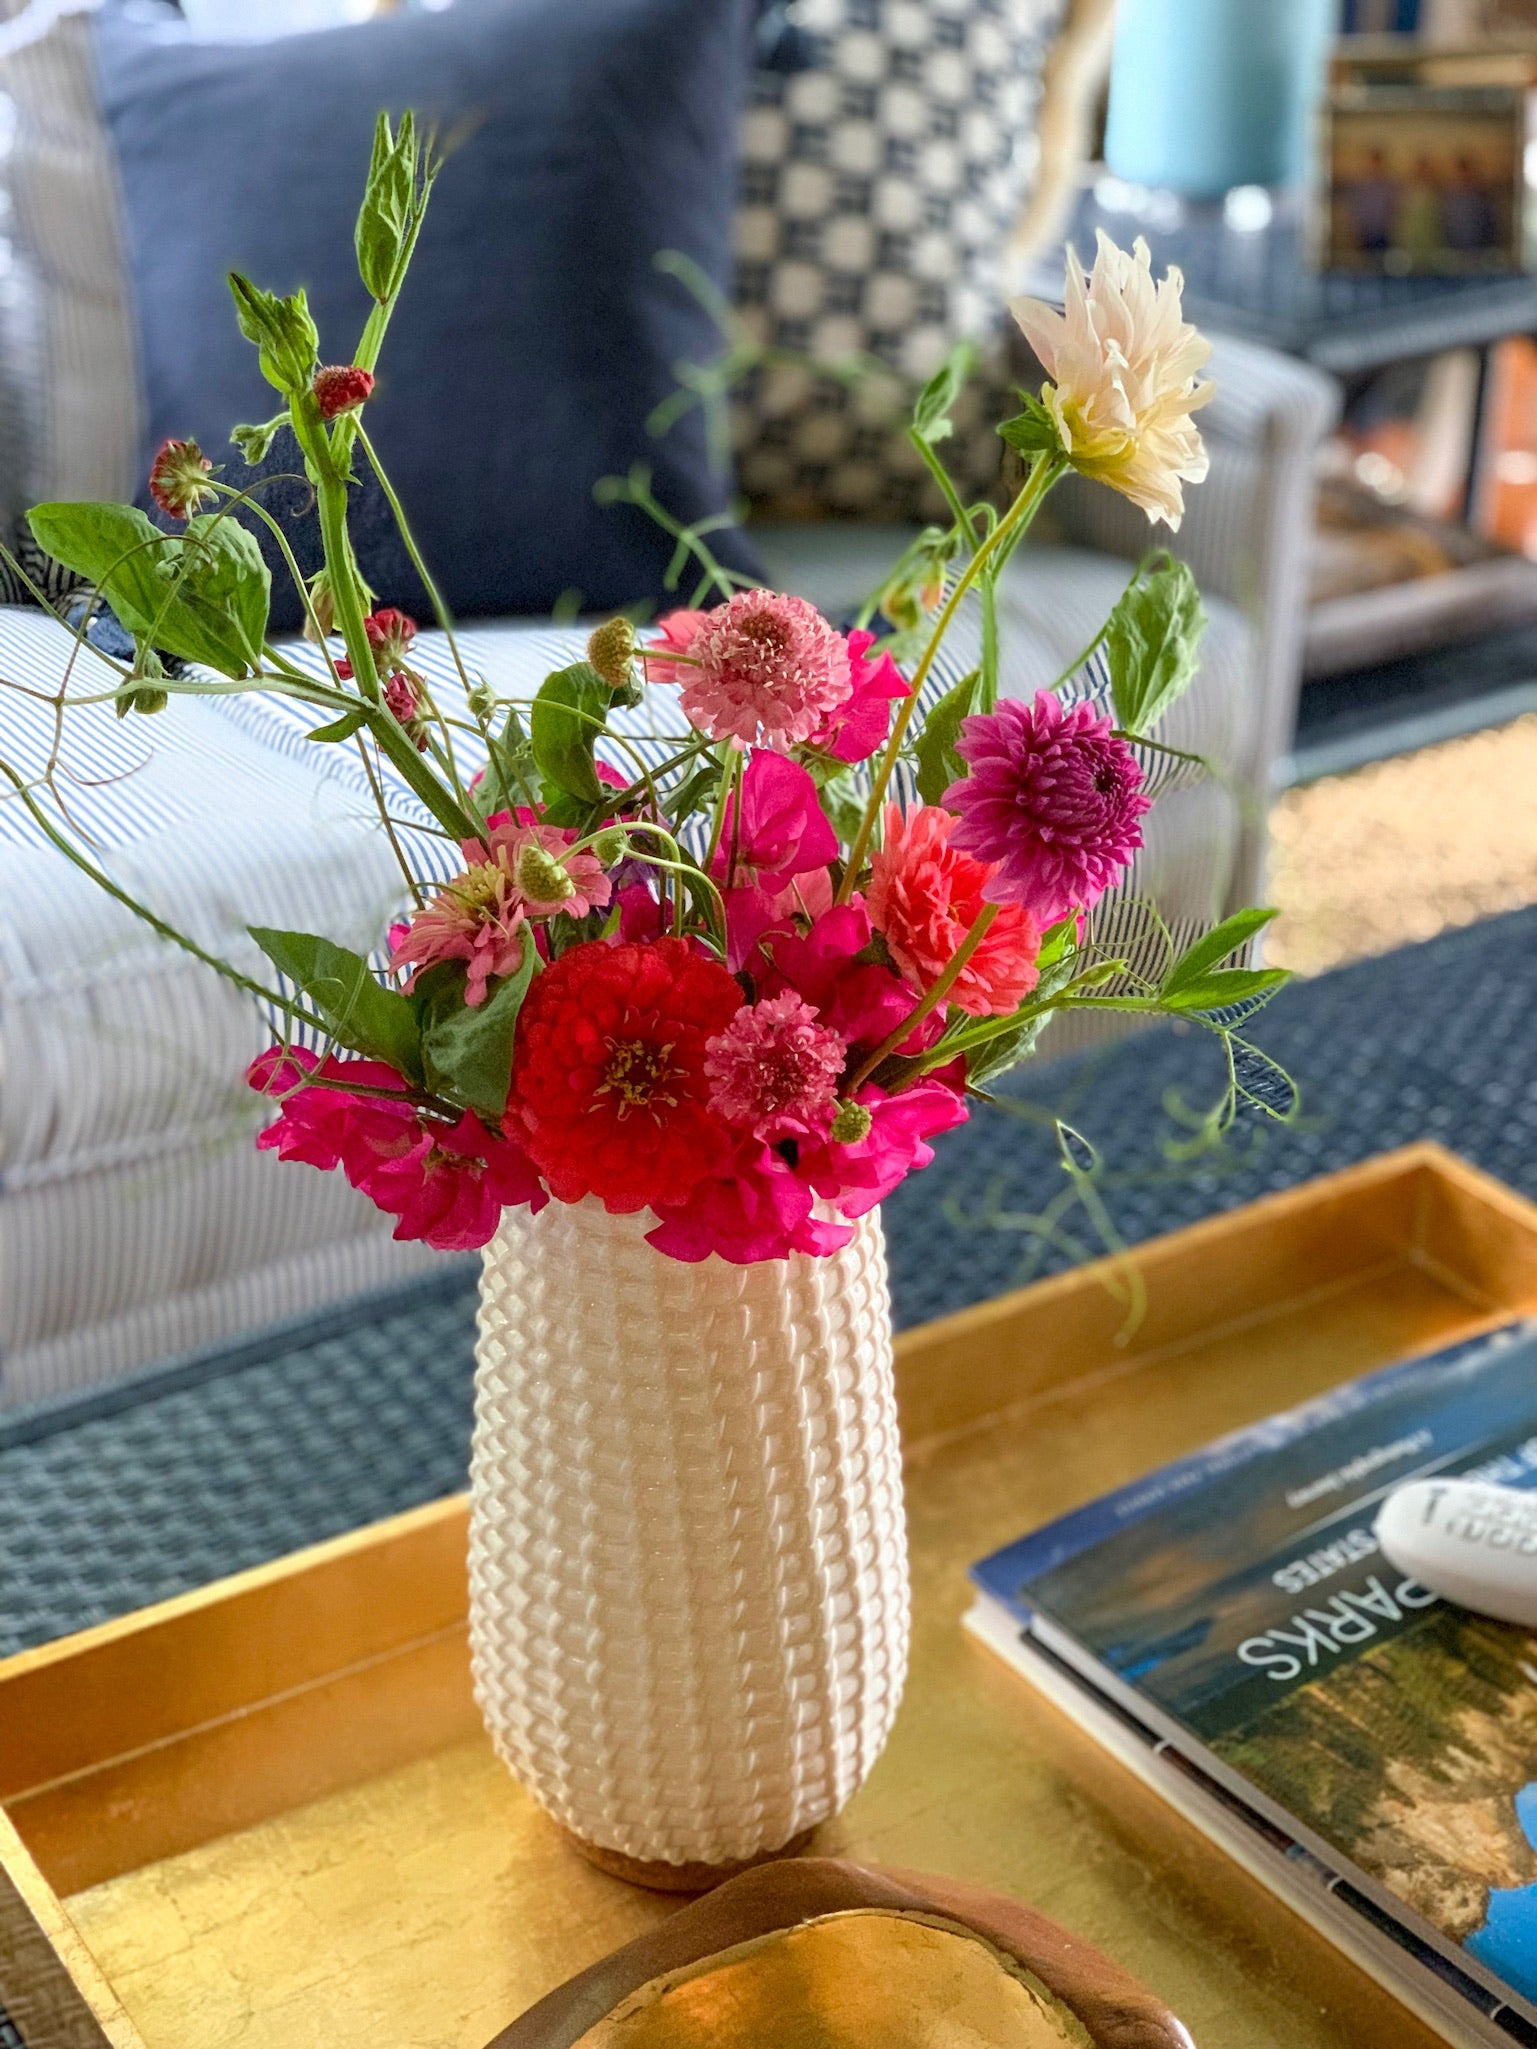 Davis Designs has the most gorgeous summer flower arrangements to impress guests and beautify your home without making any major design changes. Get inspired!